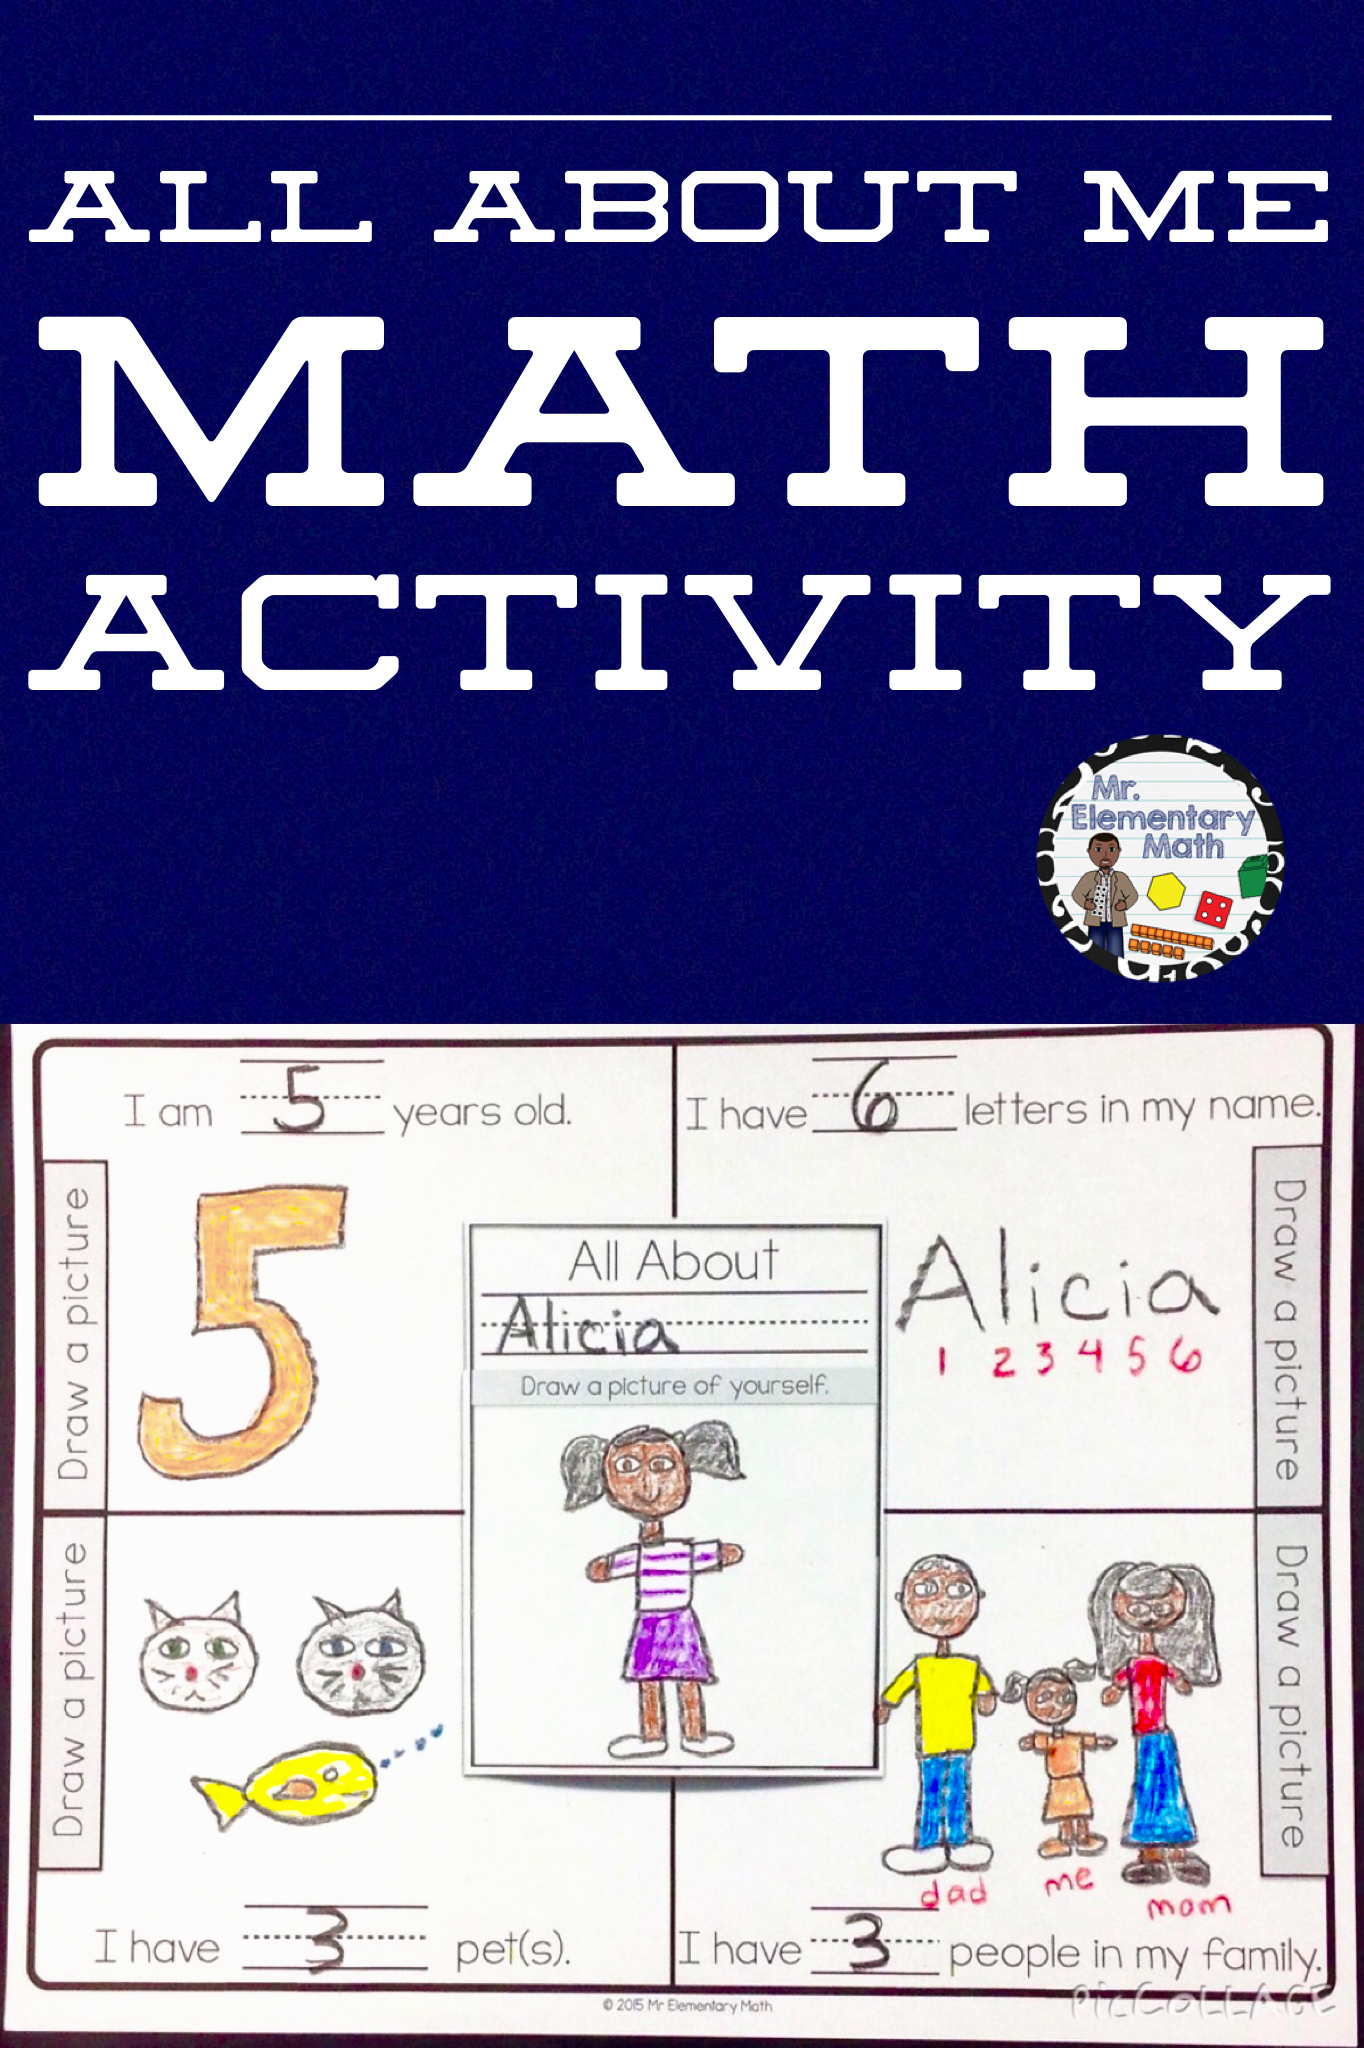 Do You Need A Fun Back To School Activity For Your Kindergarten Or 1st Grade Students Try This